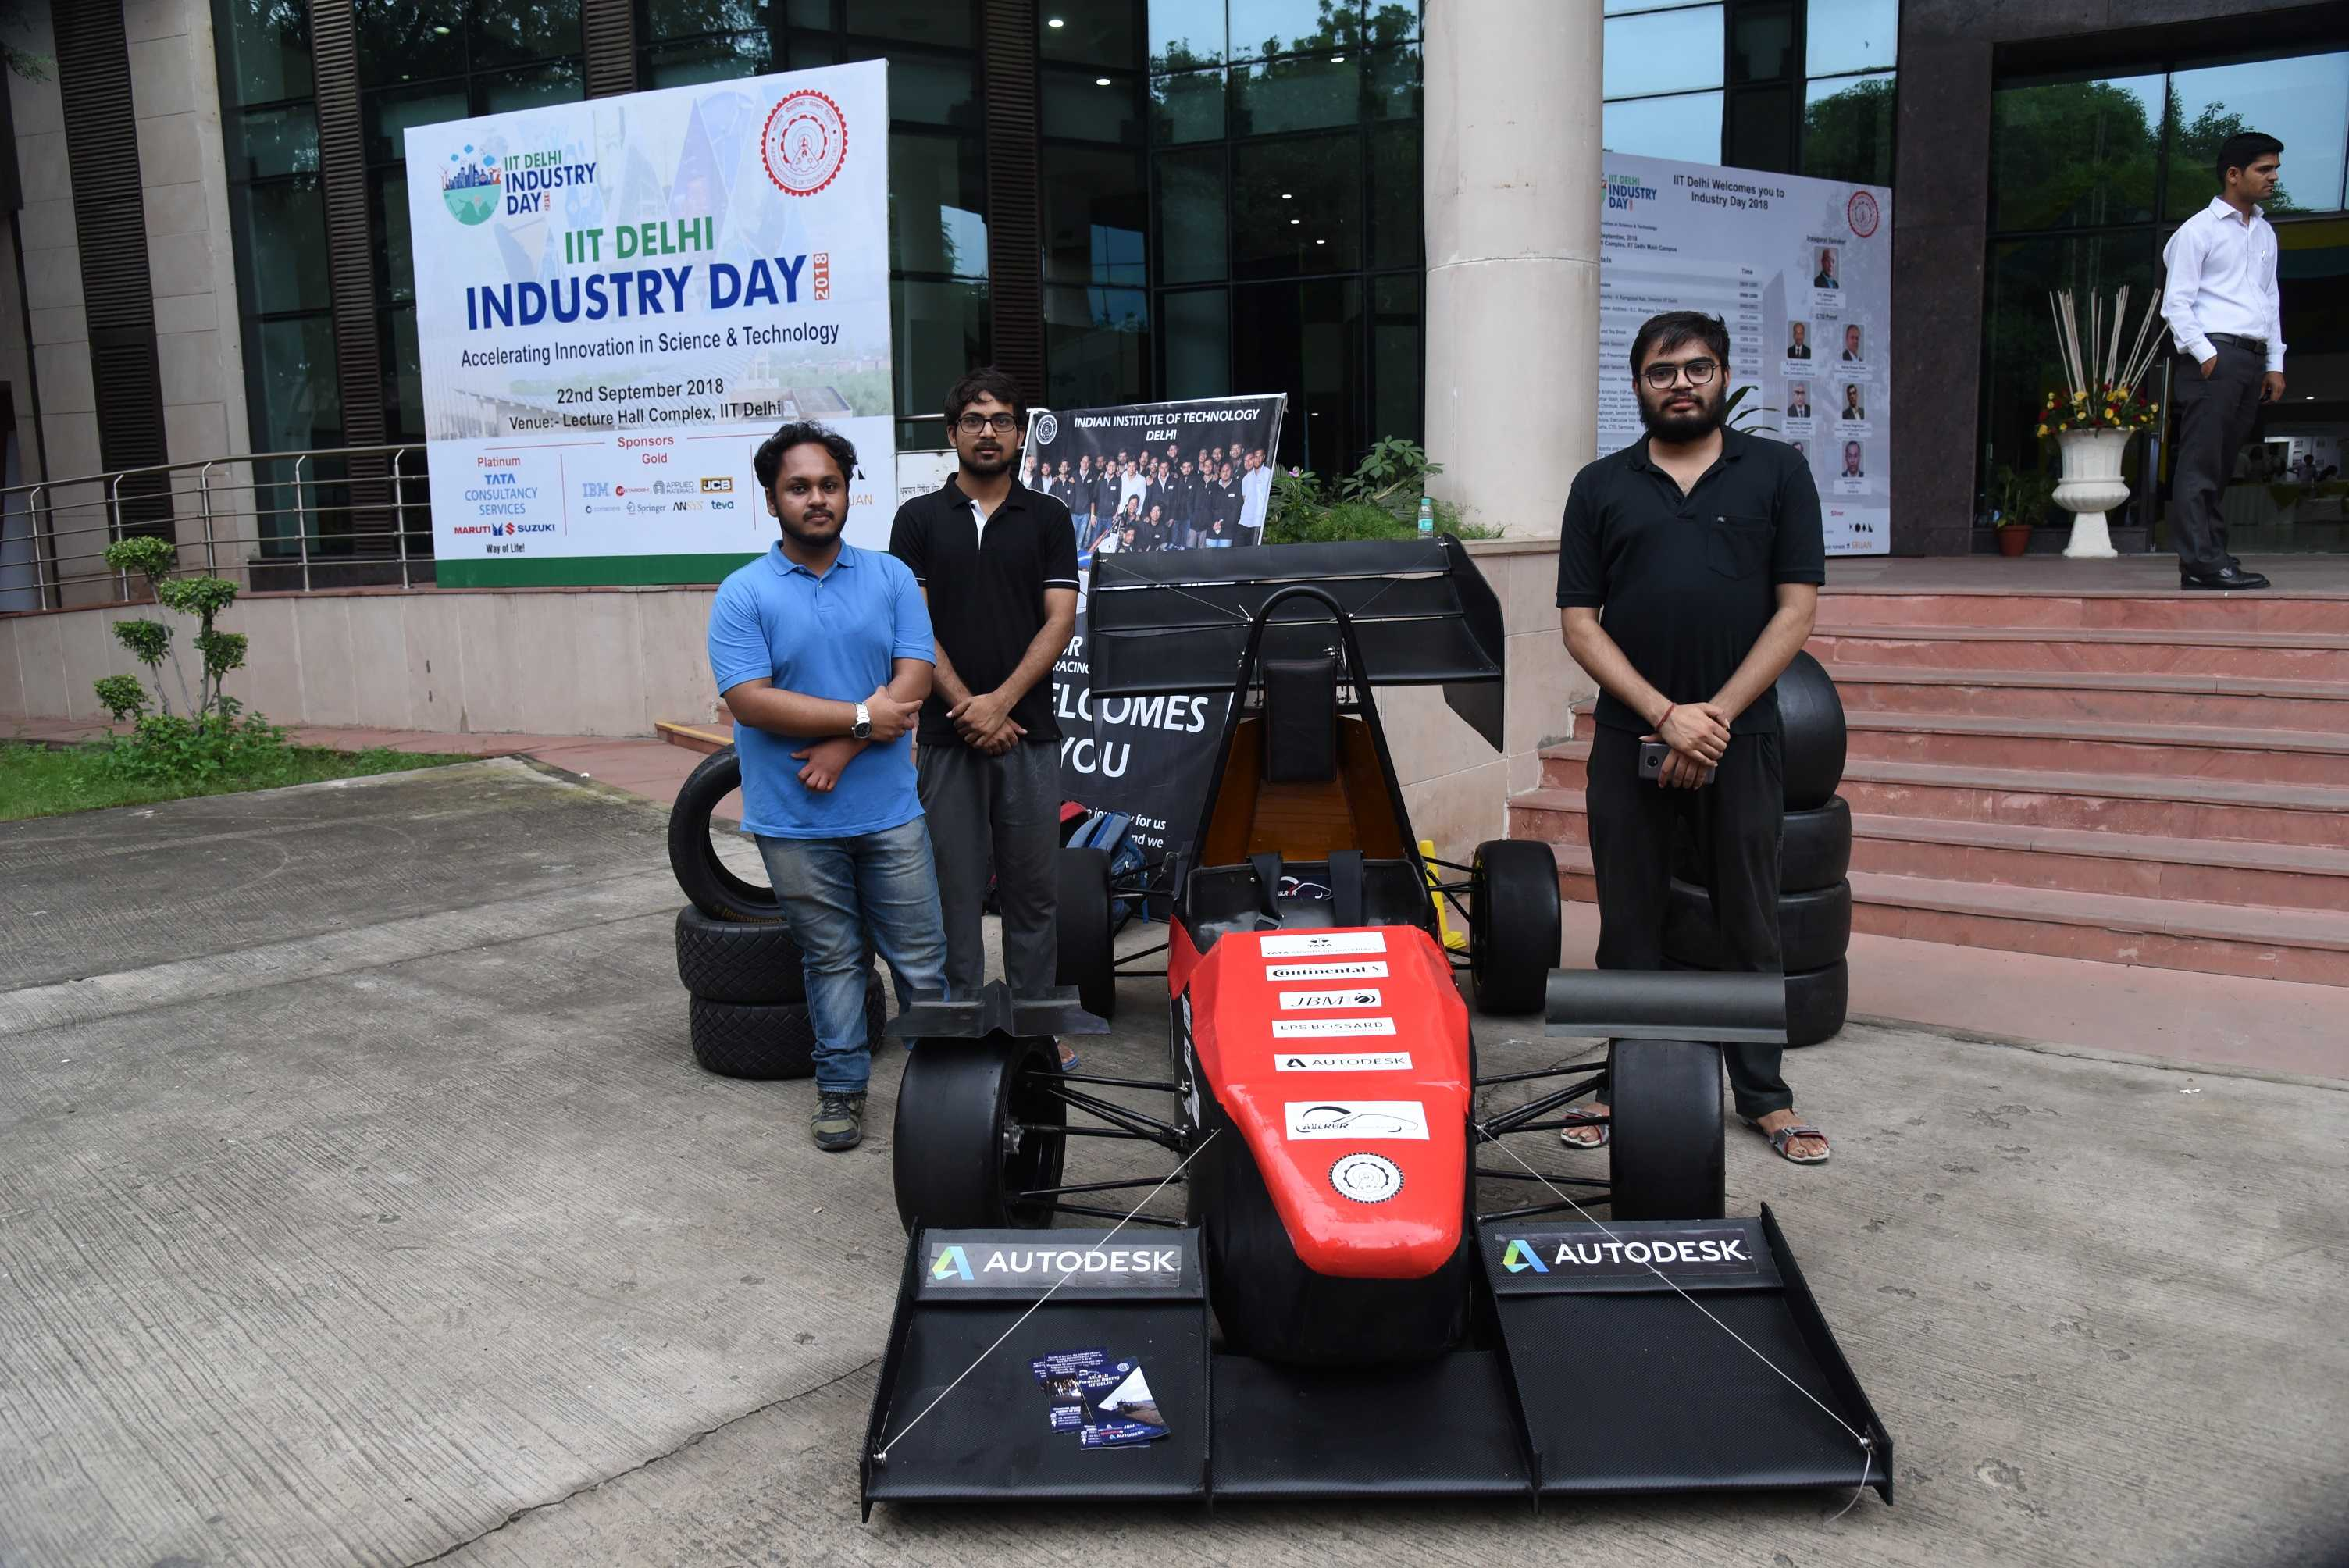 Engineering the future at IIT Industry Day 2018